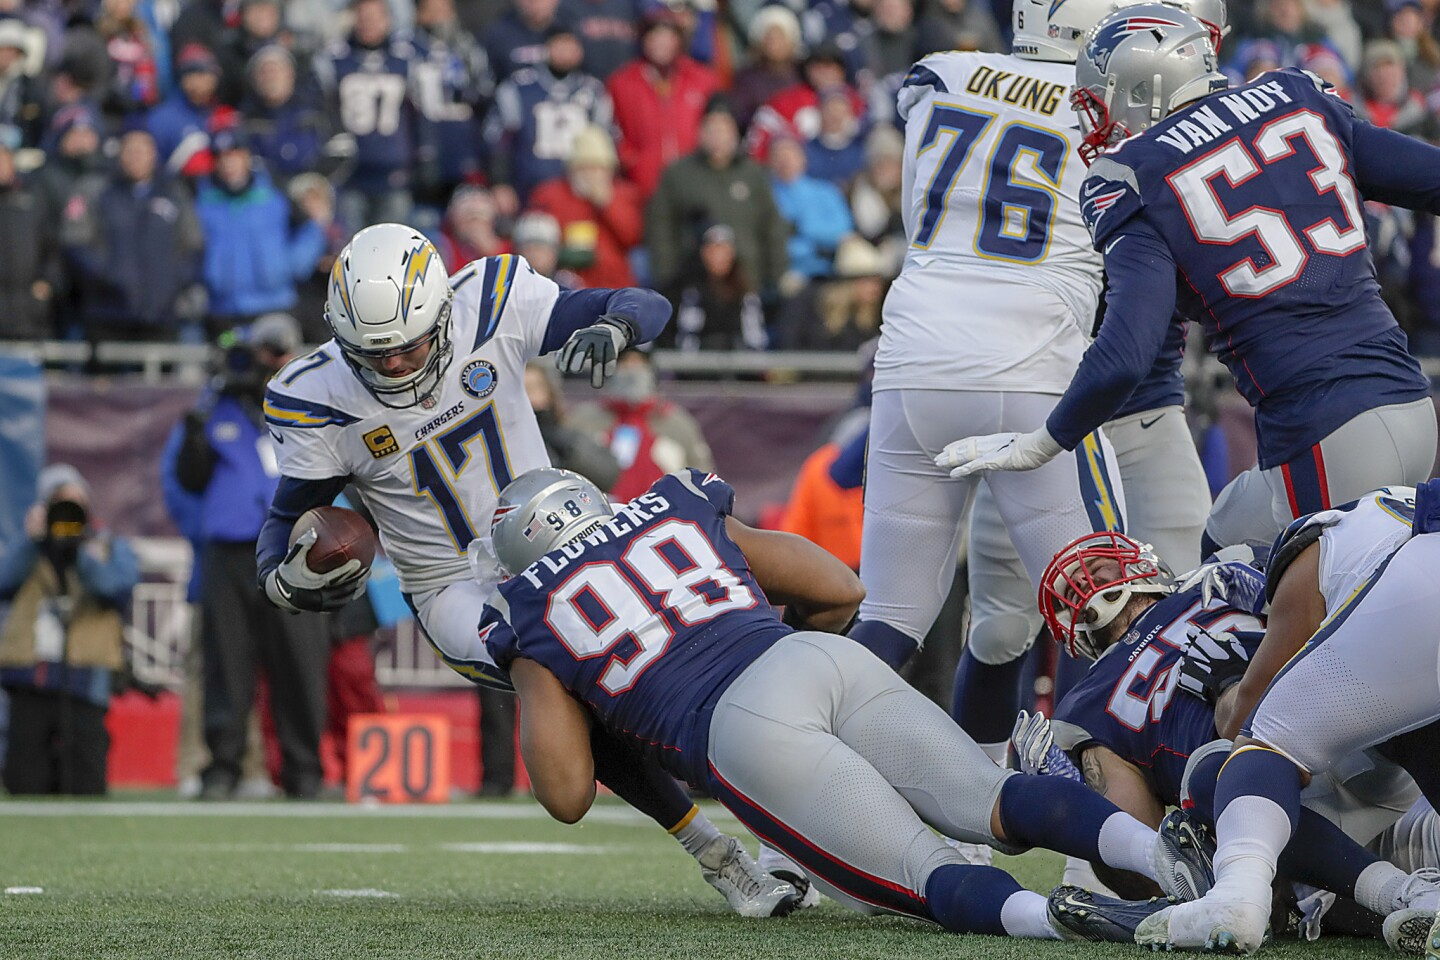 Chargers quarterback Philip Rivers is sacked by New England Patriots defensive lineman Trey Flowers late in the second quarter in the NFL AFC Divisional Playoff at Gillette Stadium on Sunday.